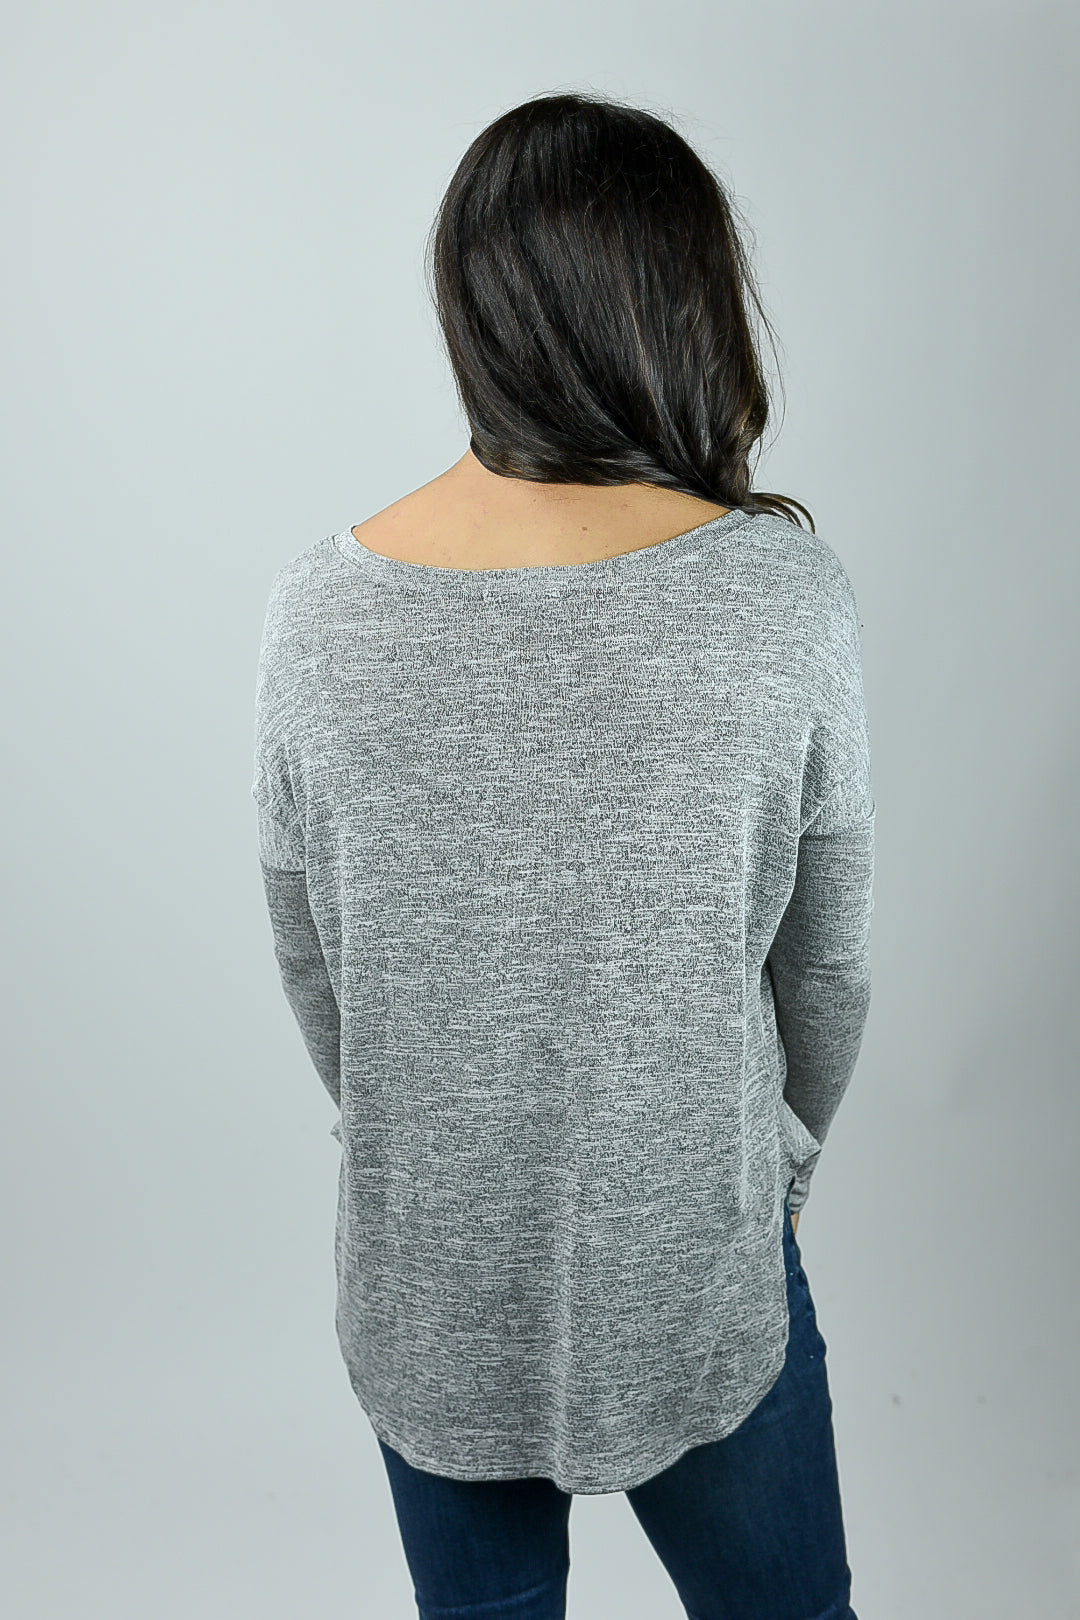 Home Again Heather Grey Lightweight Long Sleeve